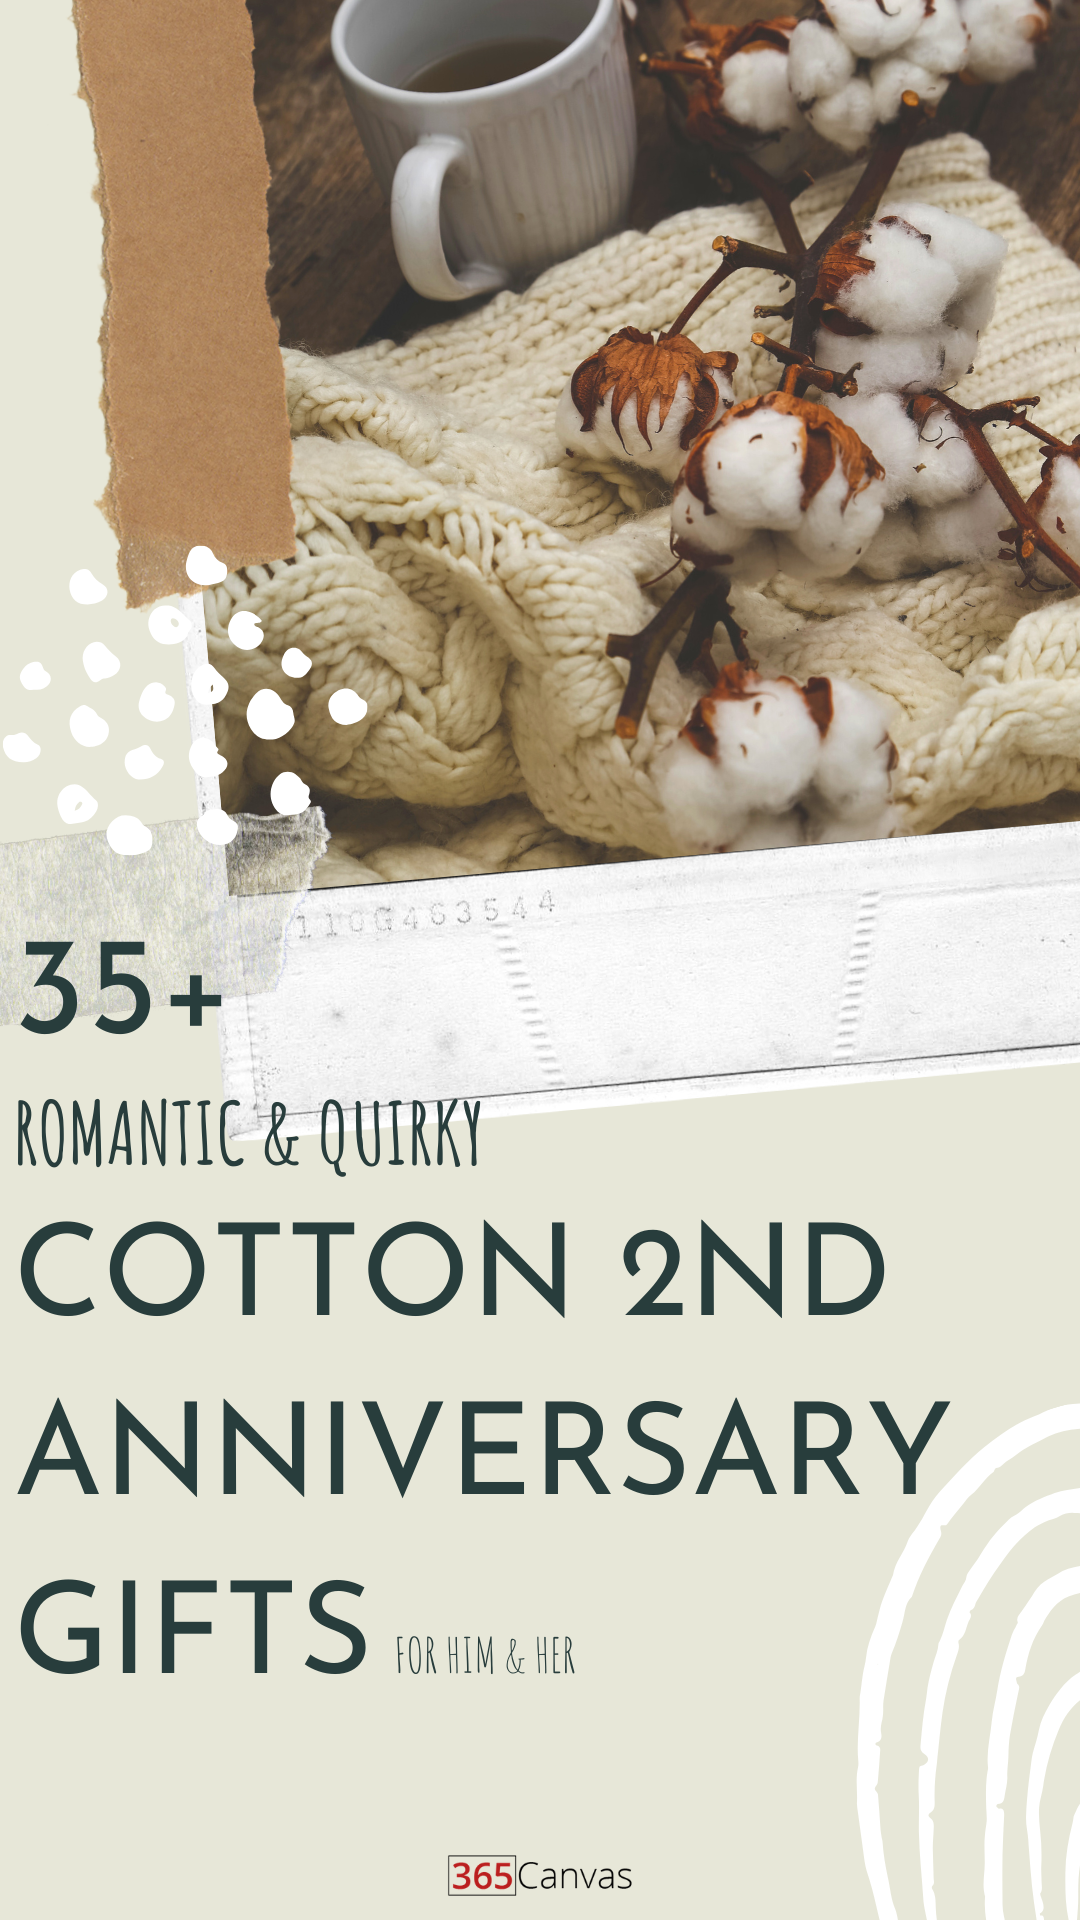 2nd Anniversary Gifts 55 Creative Ideas For Him Her 365canvas Blog In 2020 Cotton Anniversary Gifts Cotton Anniversary 2nd Anniversary Gifts